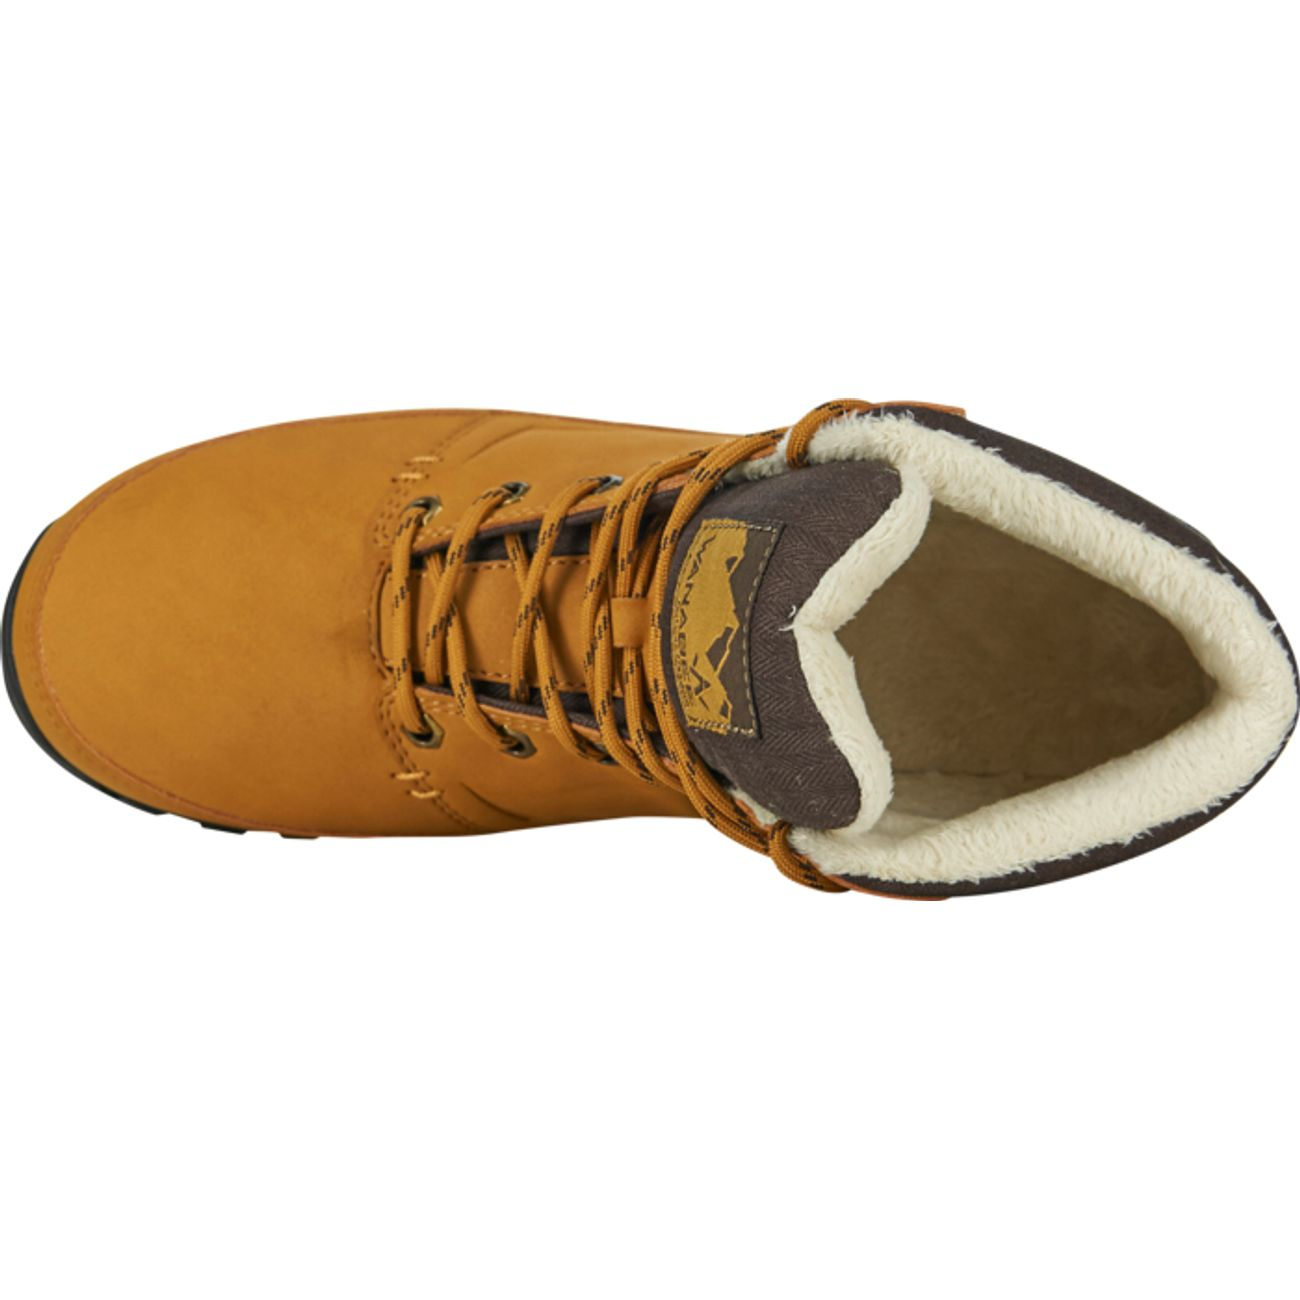 CHAUSSURES HAUTES Outdoor homme WANABEE URBAN WINTER MID 3 WP M TAN